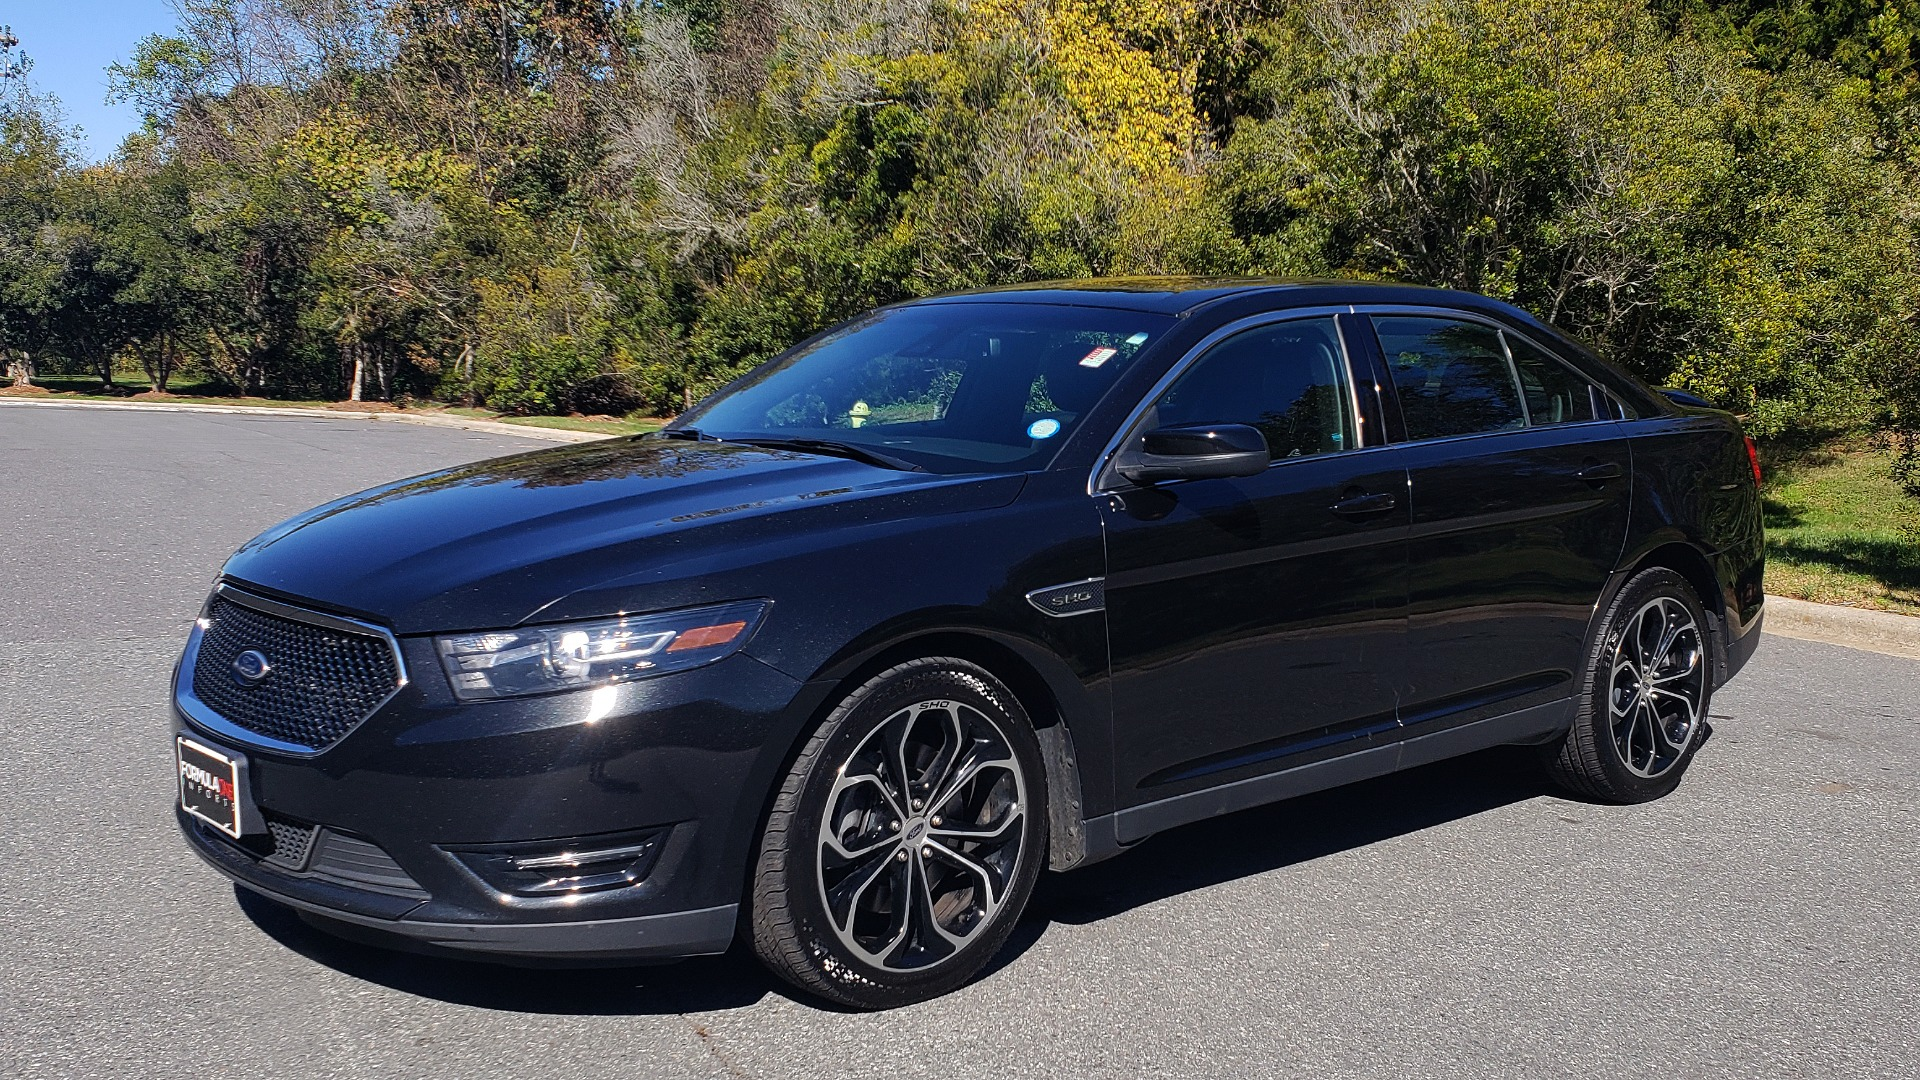 Used 2015 Ford TAURUS SHO 3.5L ECOBOOST V6 / NAV / SUNROOF / HTD STS / BSM / REARVIEW for sale Sold at Formula Imports in Charlotte NC 28227 2